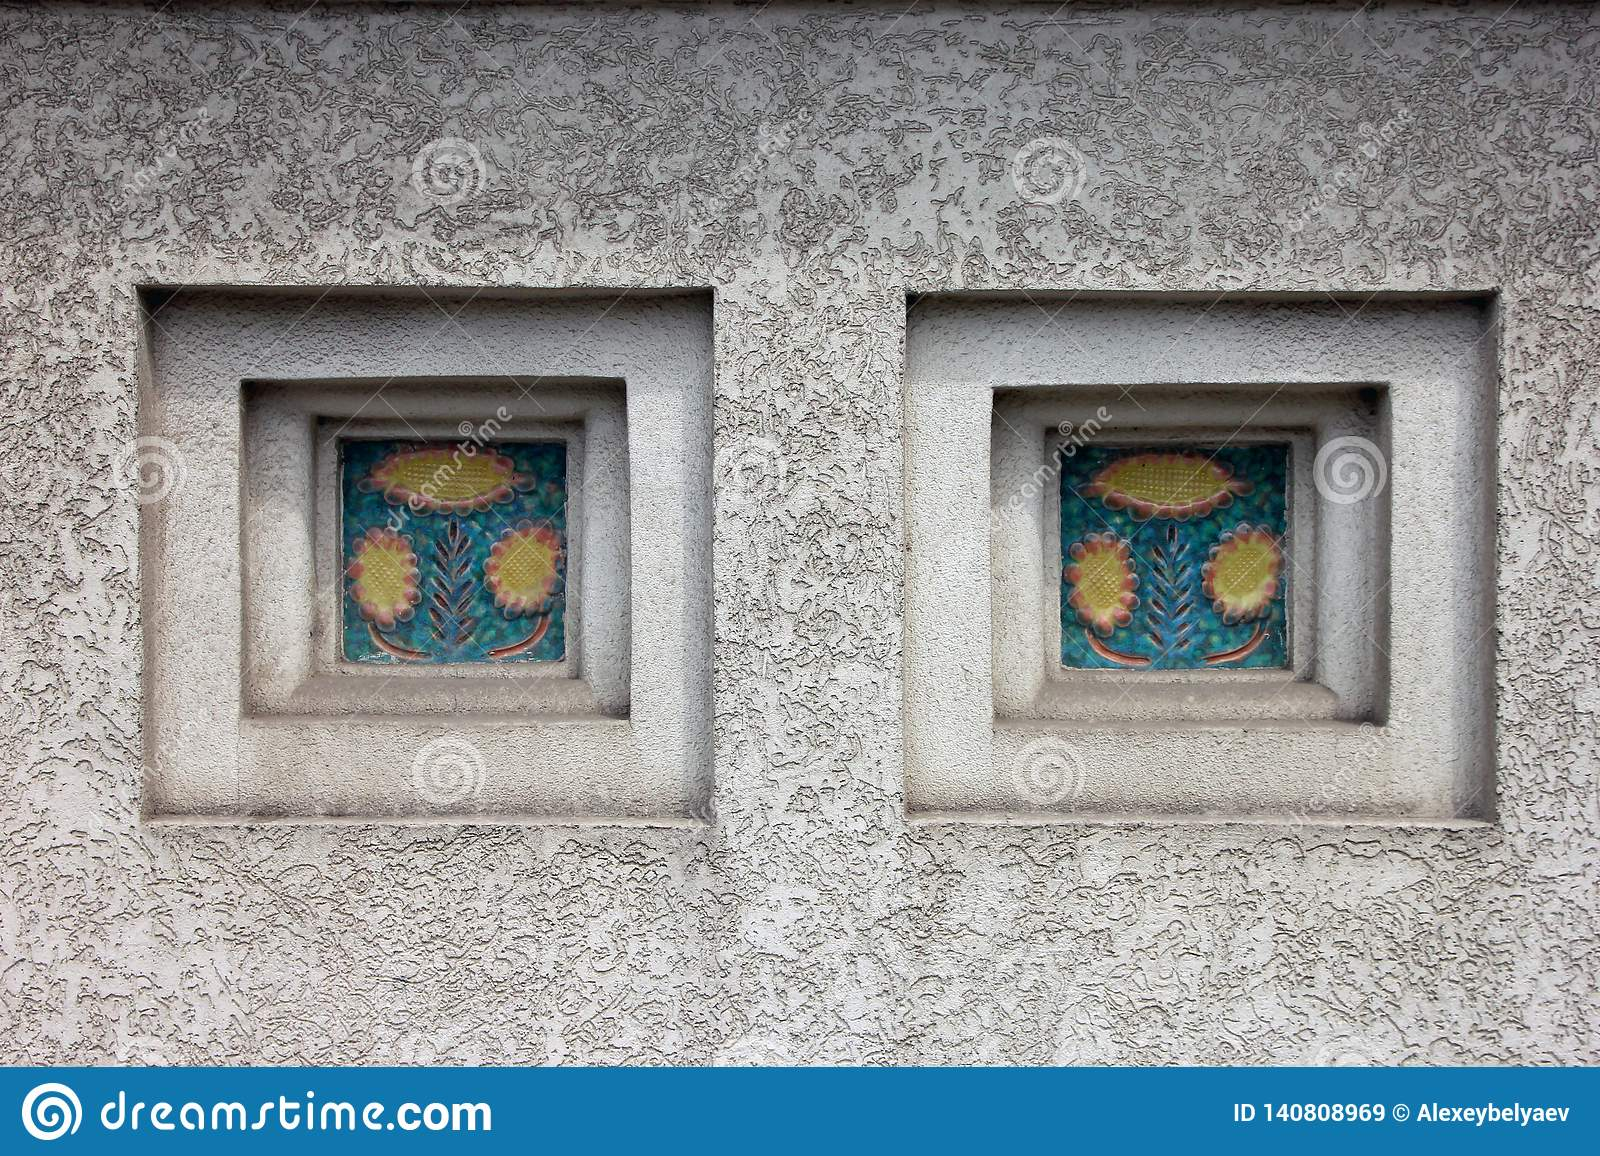 https www dreamstime com niches decorative inserts ceramic tile white plastered wall image140808969